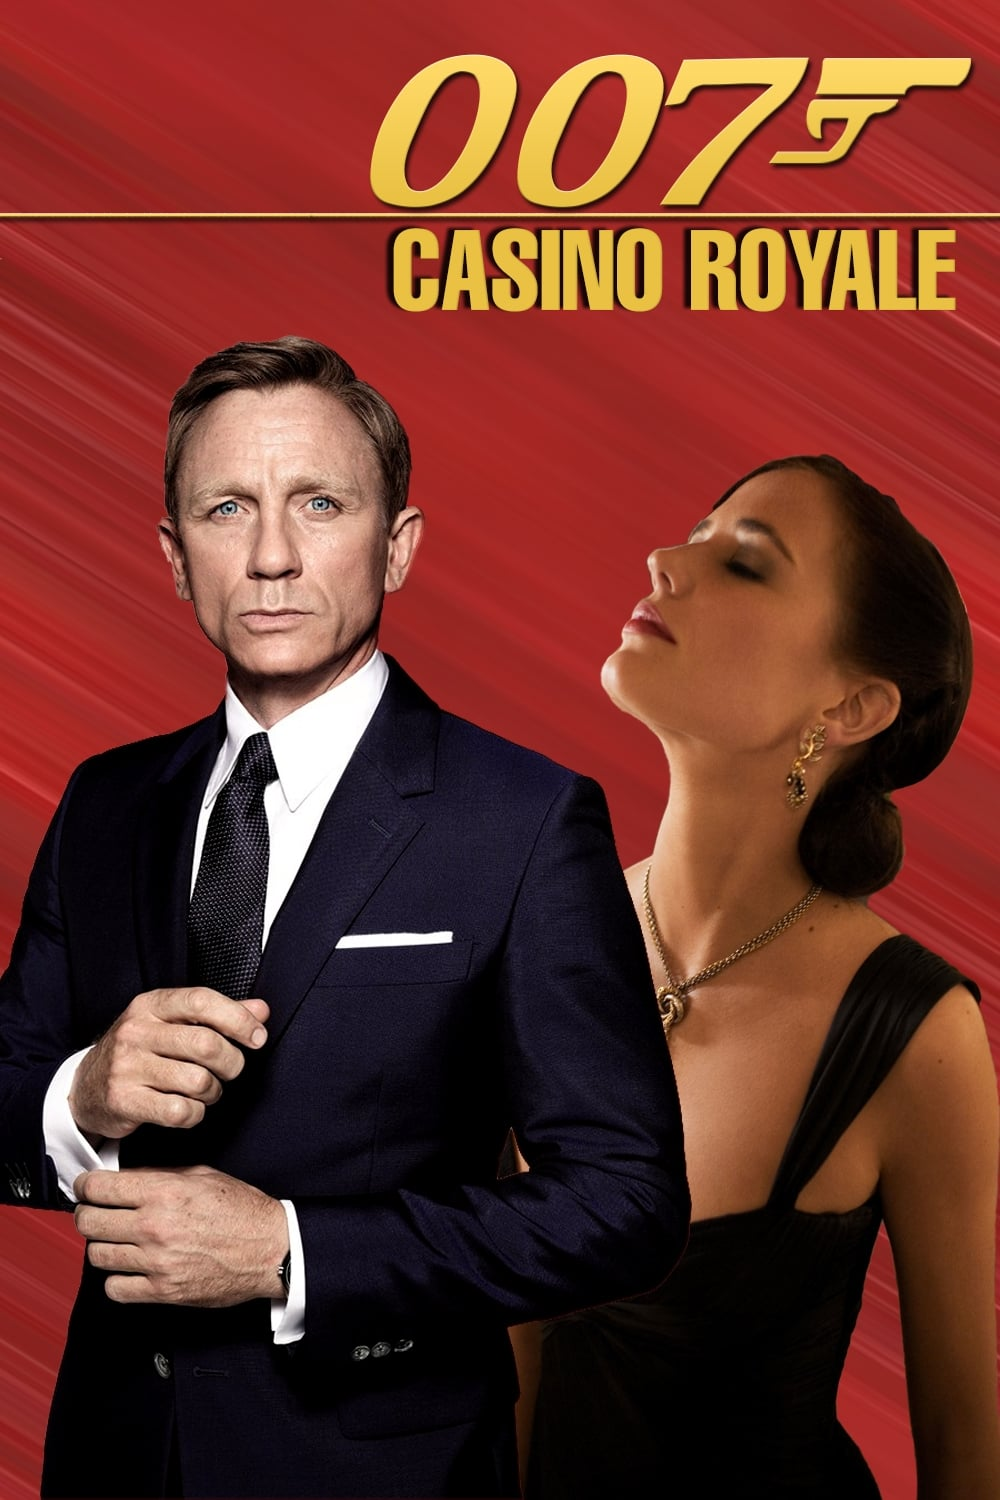 download casino royale movie in 720p